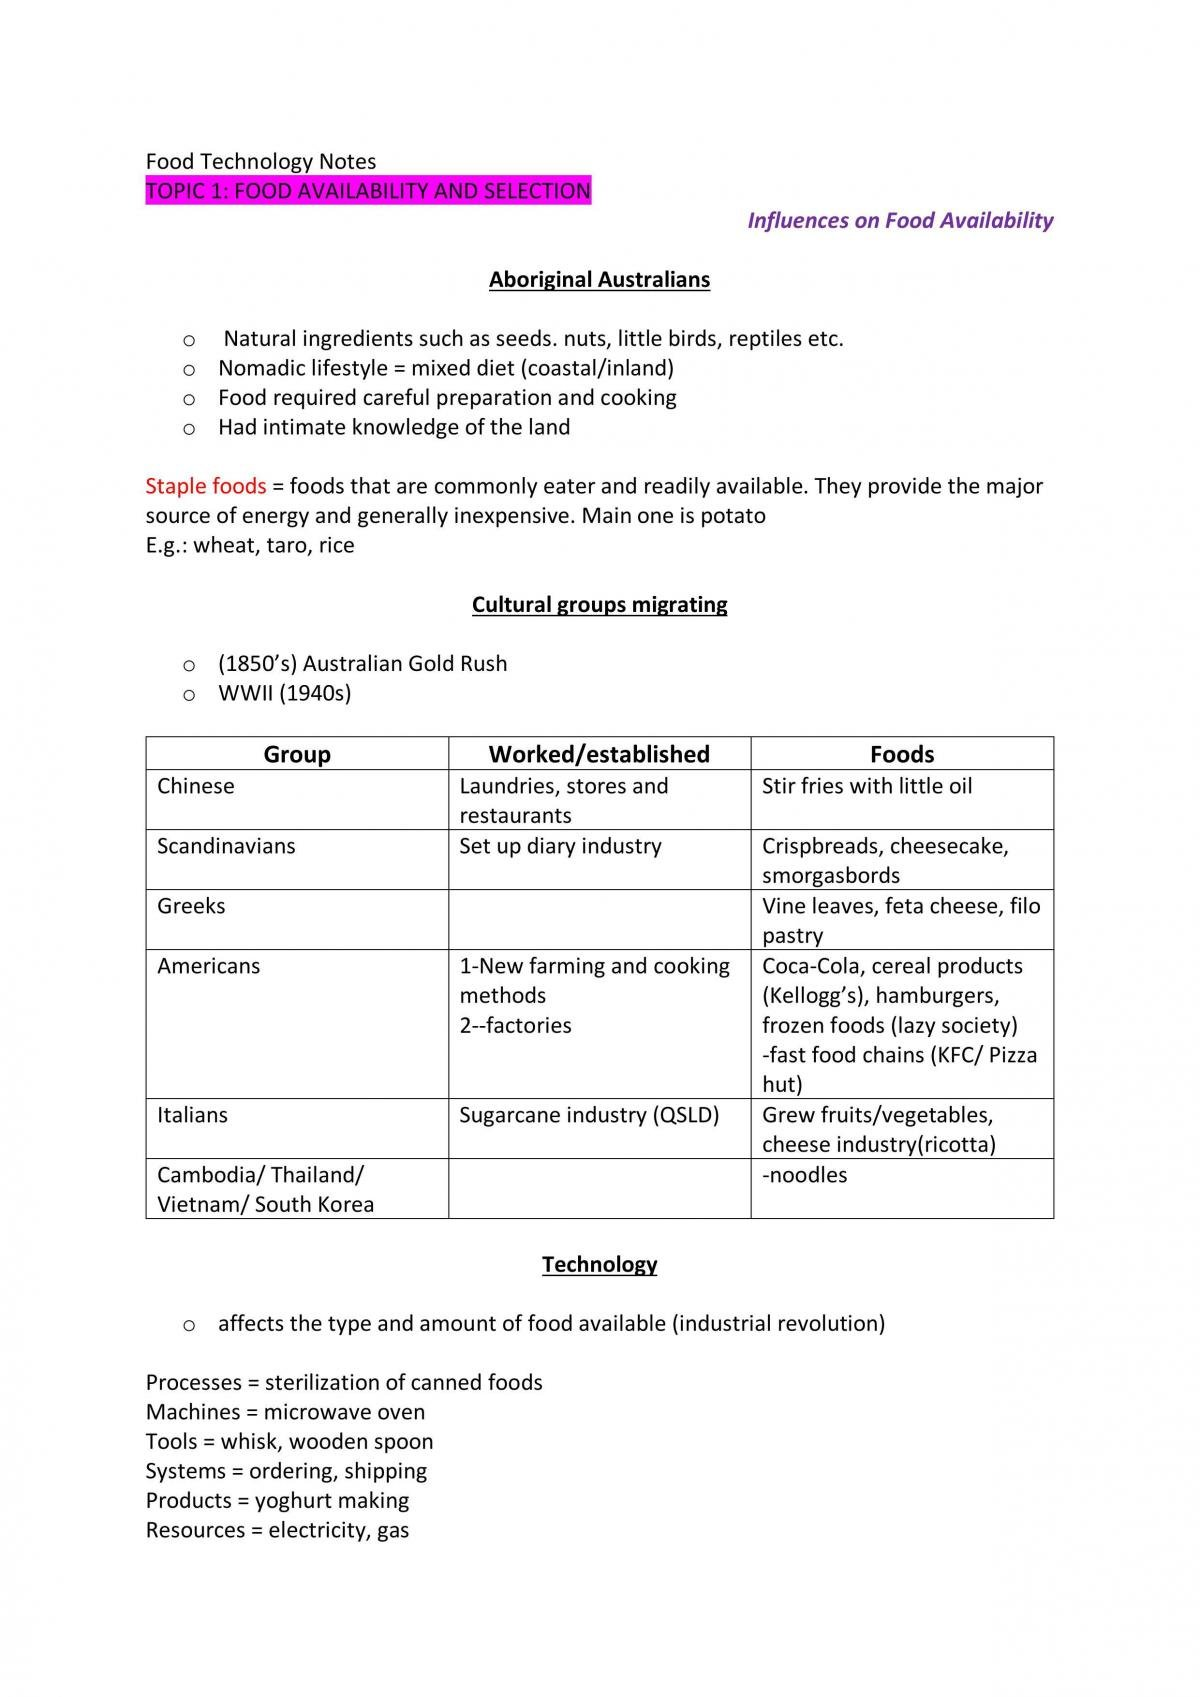 Year 11 Food Technology Notes - Page 1